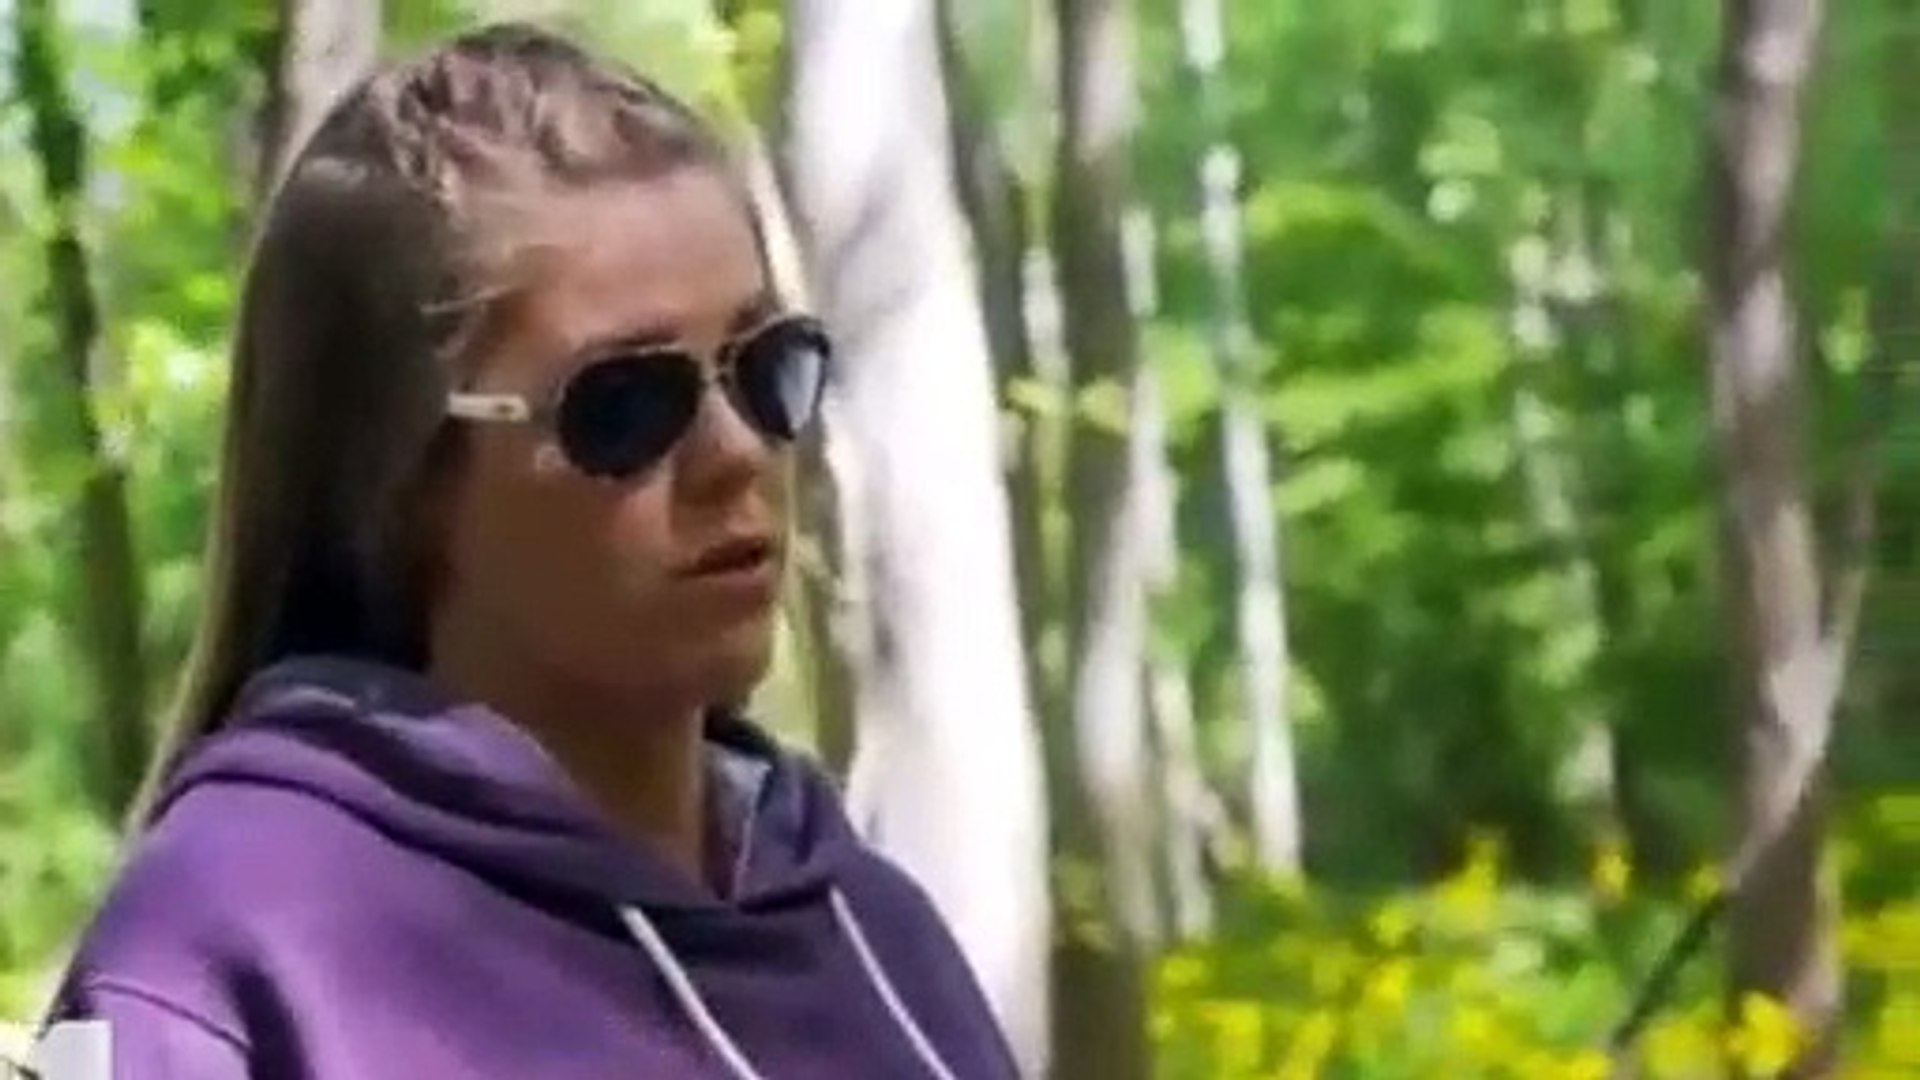 Teen Mom 2 Today Episode    Teen Mom 2  S08E28  Forgot About Dre  July 9, 2018    Teen Mom 2 S8 E28